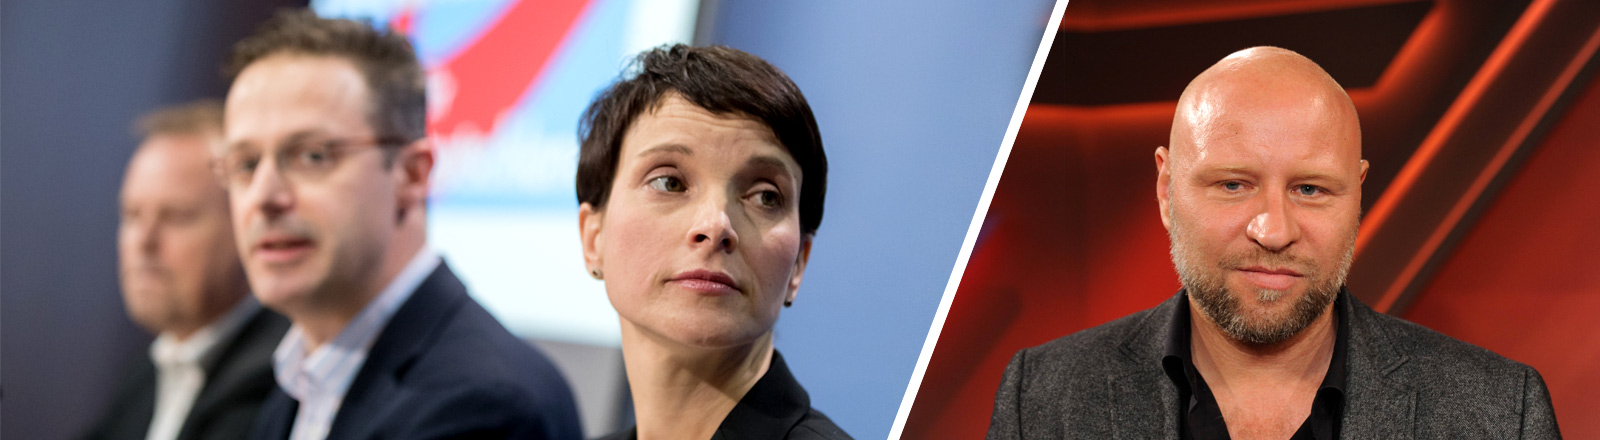 rechts Journalist Olaf Sundermeyer, links AfD-Politiker Frauke Petry und Marcus Pretzell